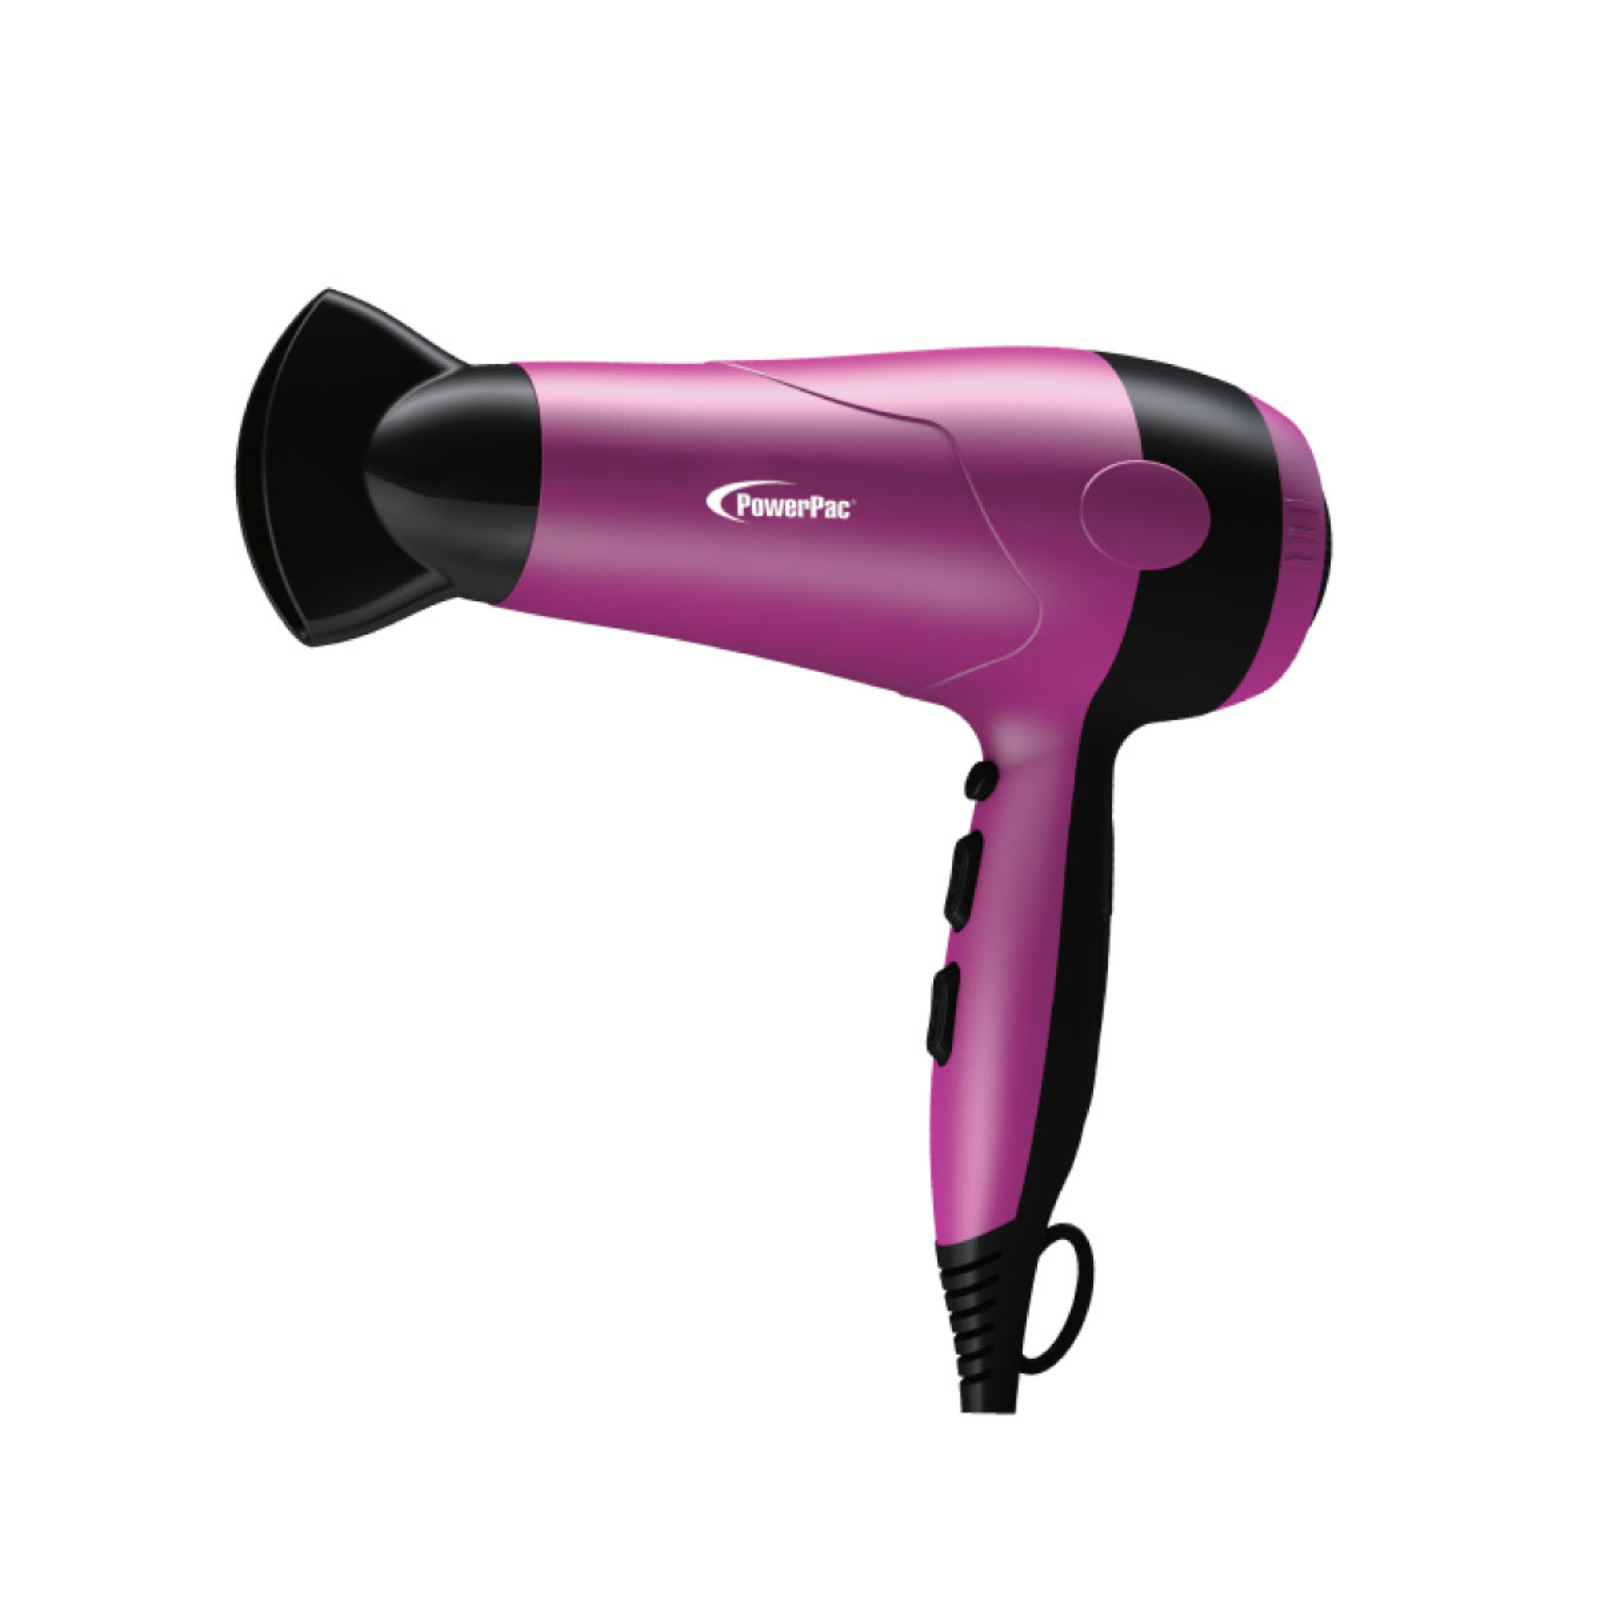 PowerPac Hair Dryer With Cool Air 2000w - PPH9075